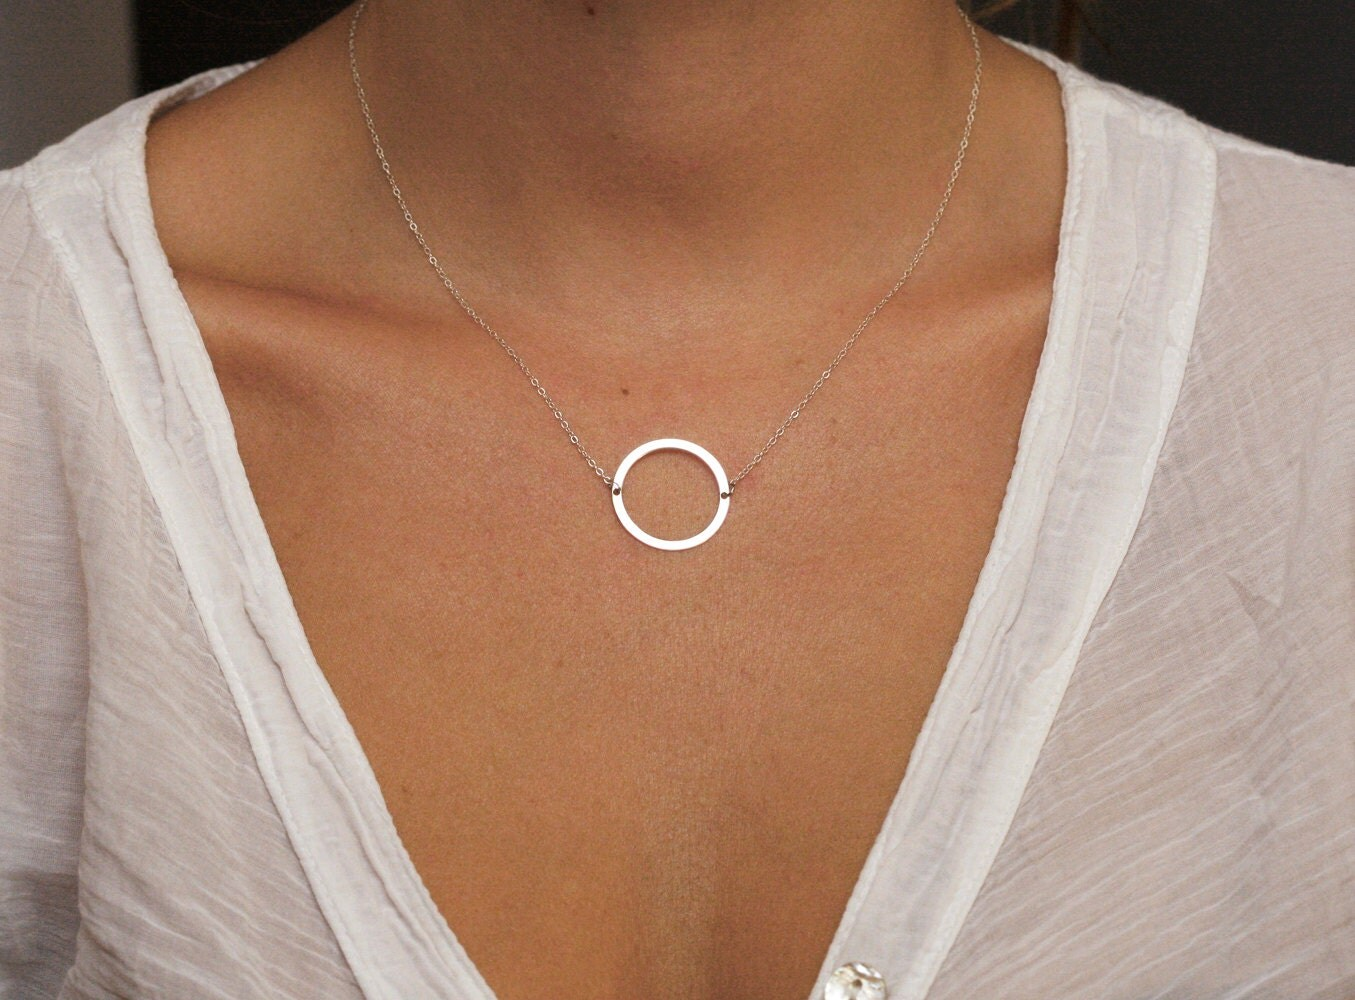 White gold everyday necklace